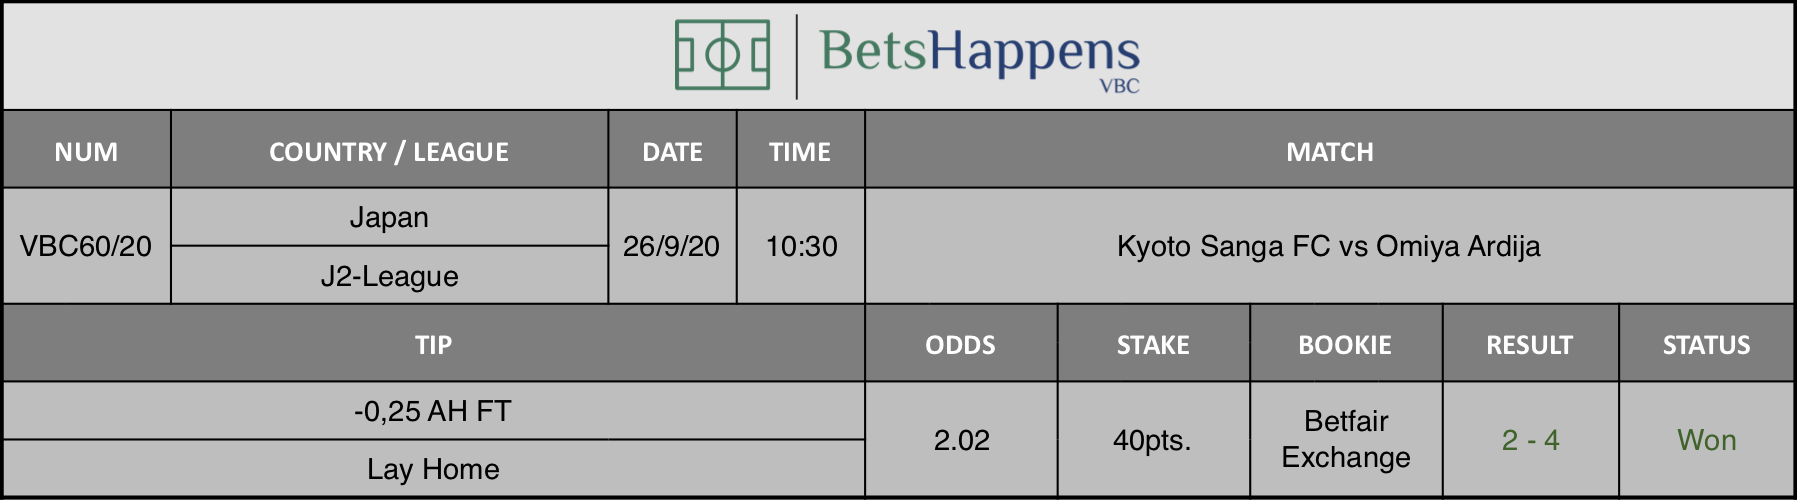 Results of our advice for the Kyoto Sanga FC vs Omiya Ardija match in which -0.25 AH F / T Lay Home is recommended.